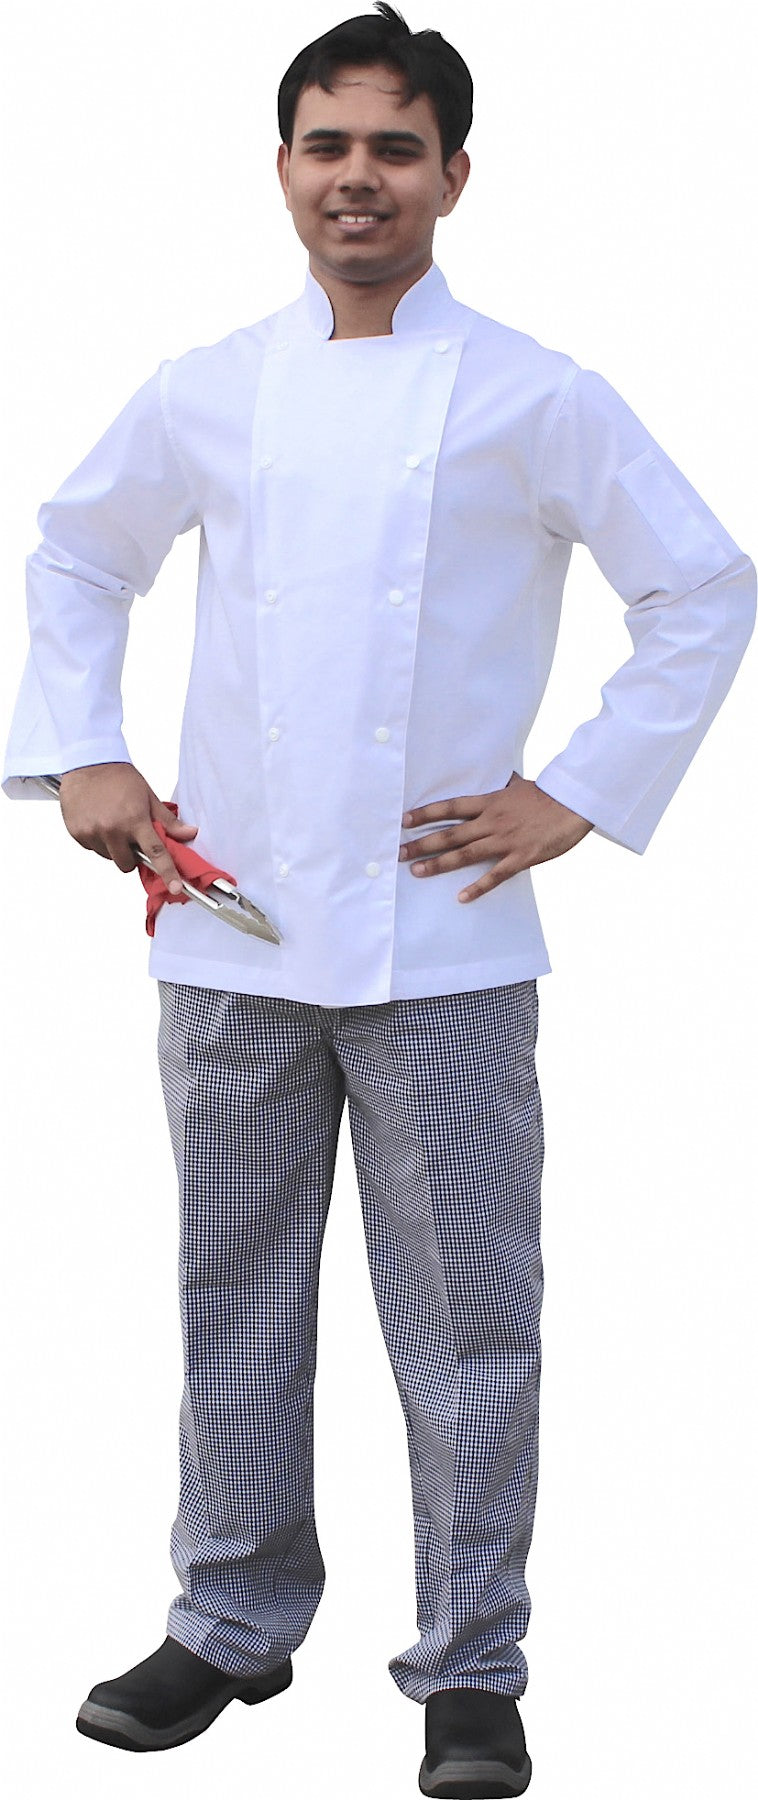 Full Chef Uniform jacket and Pants